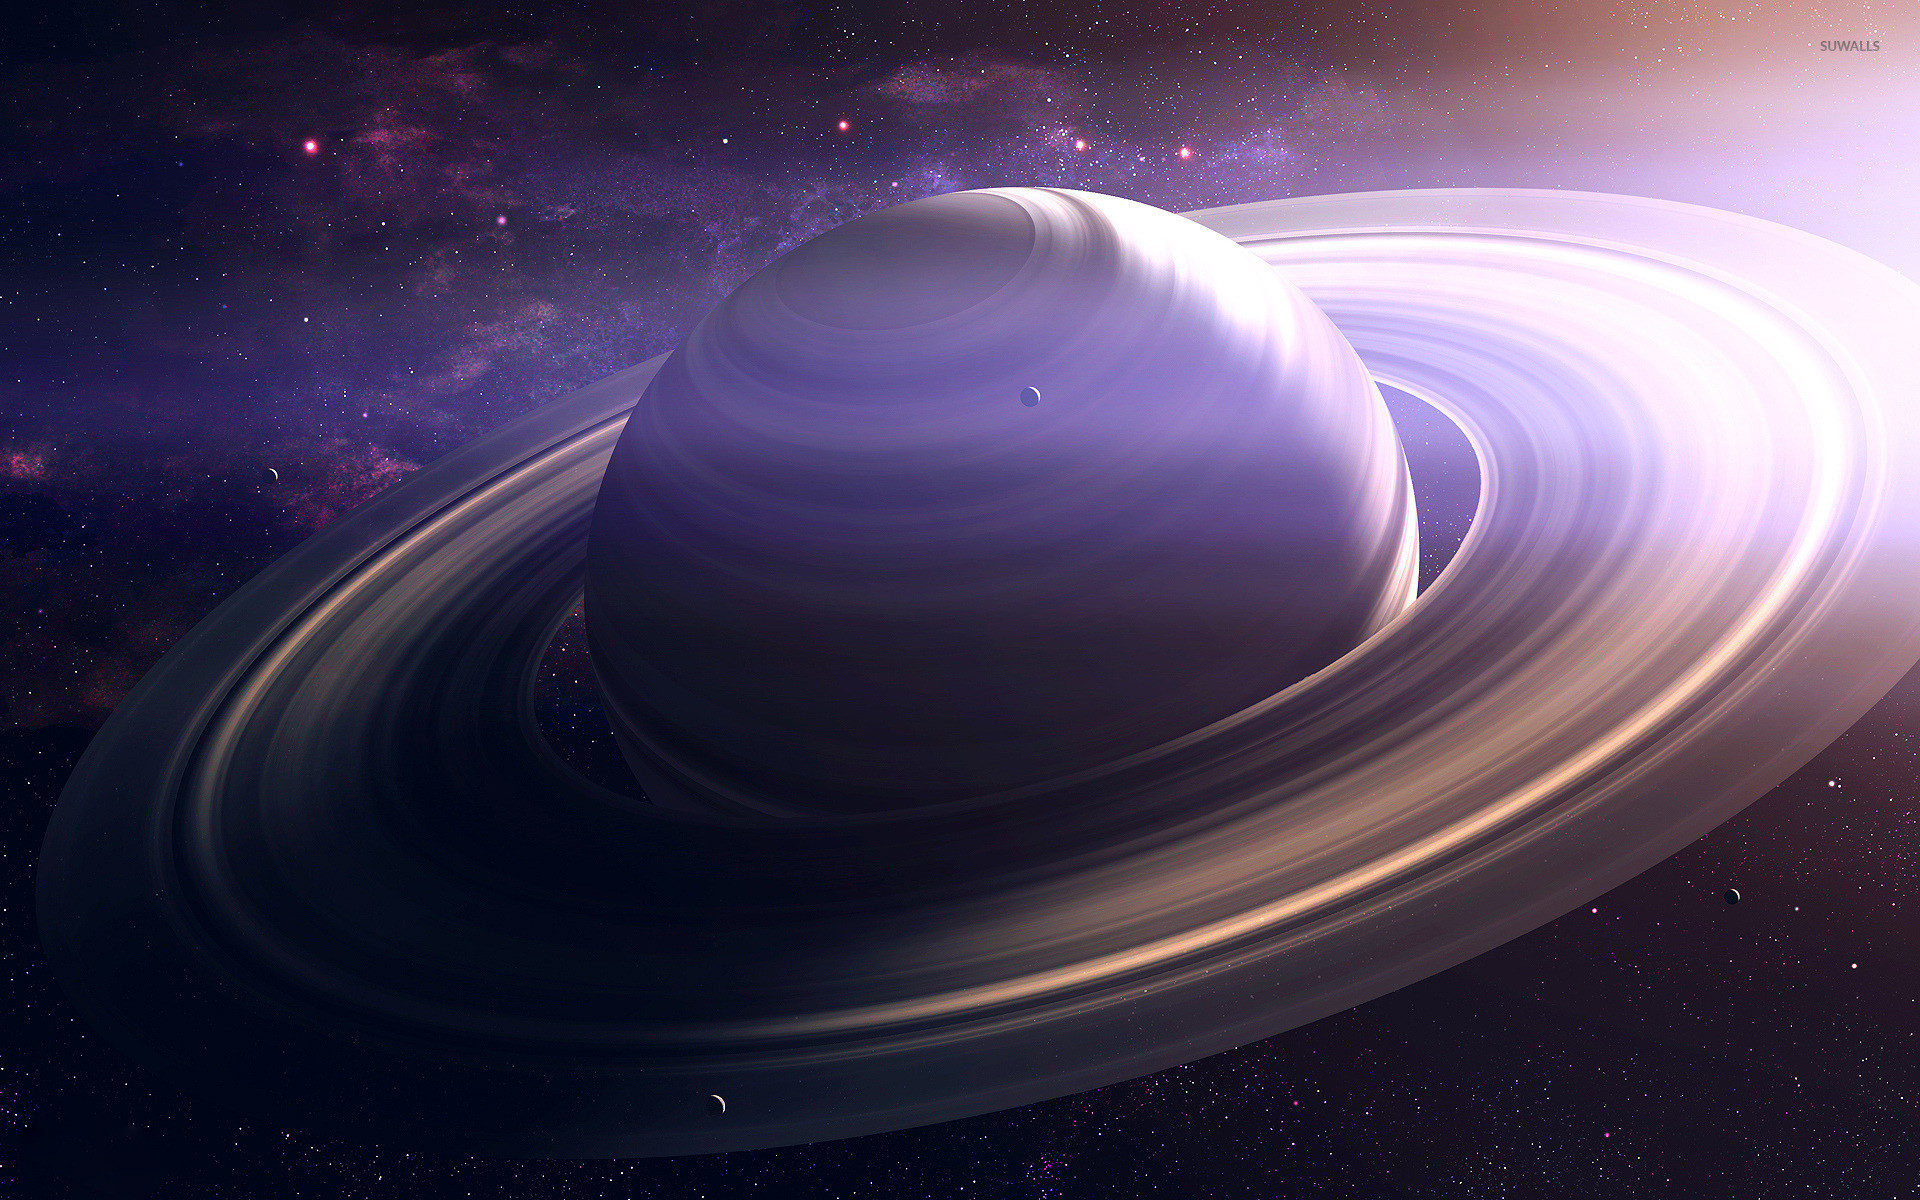 Planet with rings wallpaper jpg